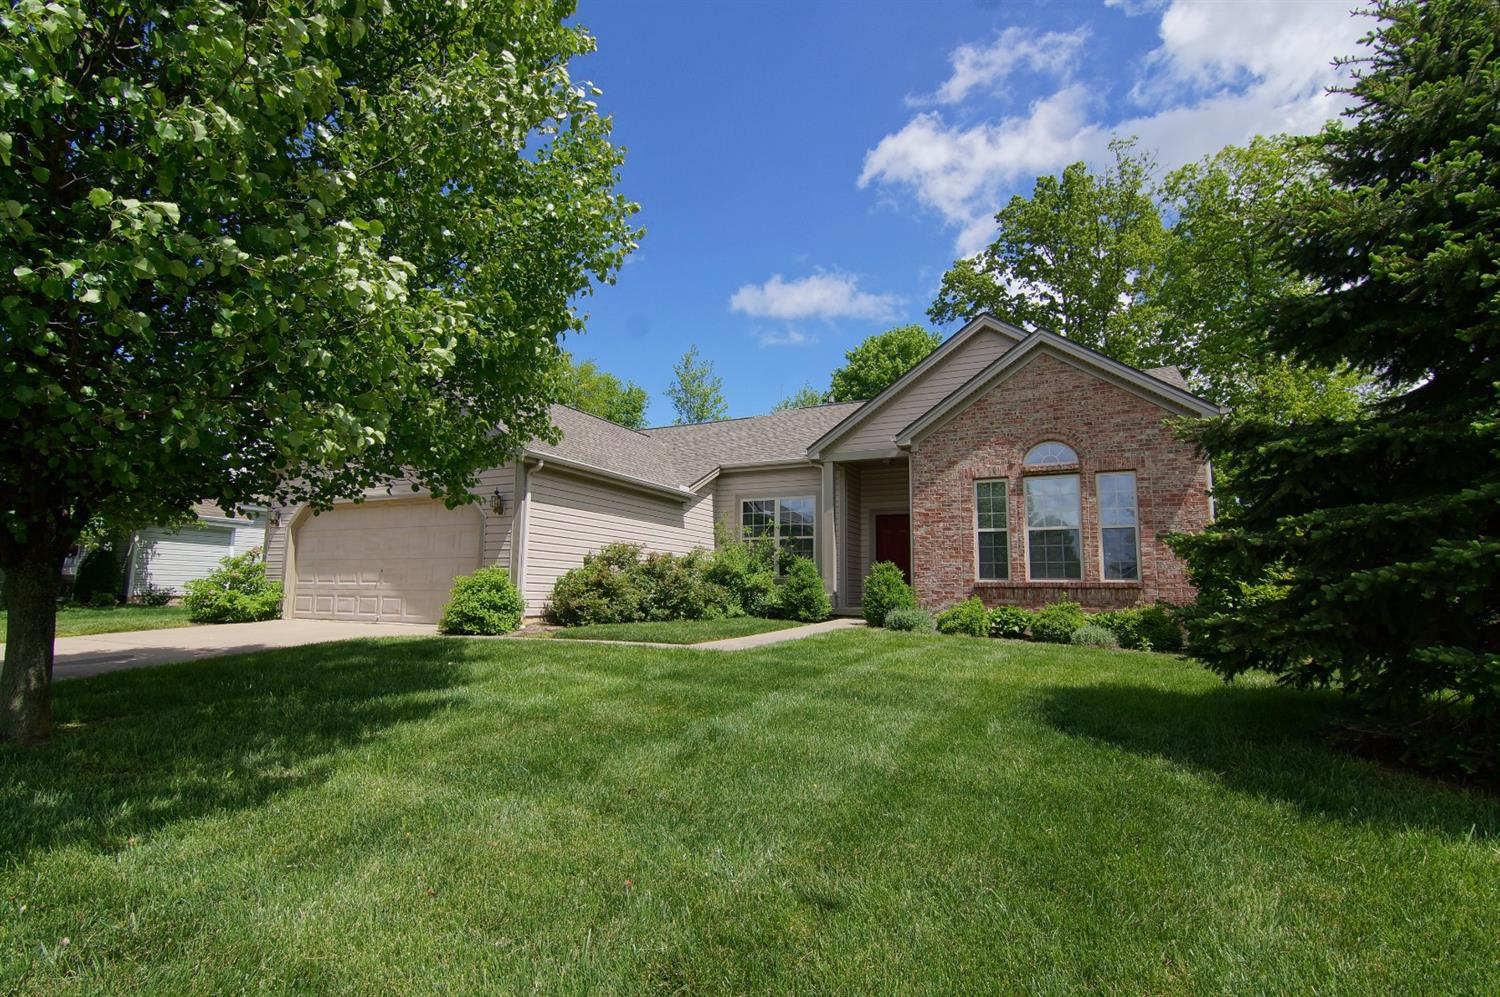 4168 Sagewood Dr Union Twp. (Clermont), OH